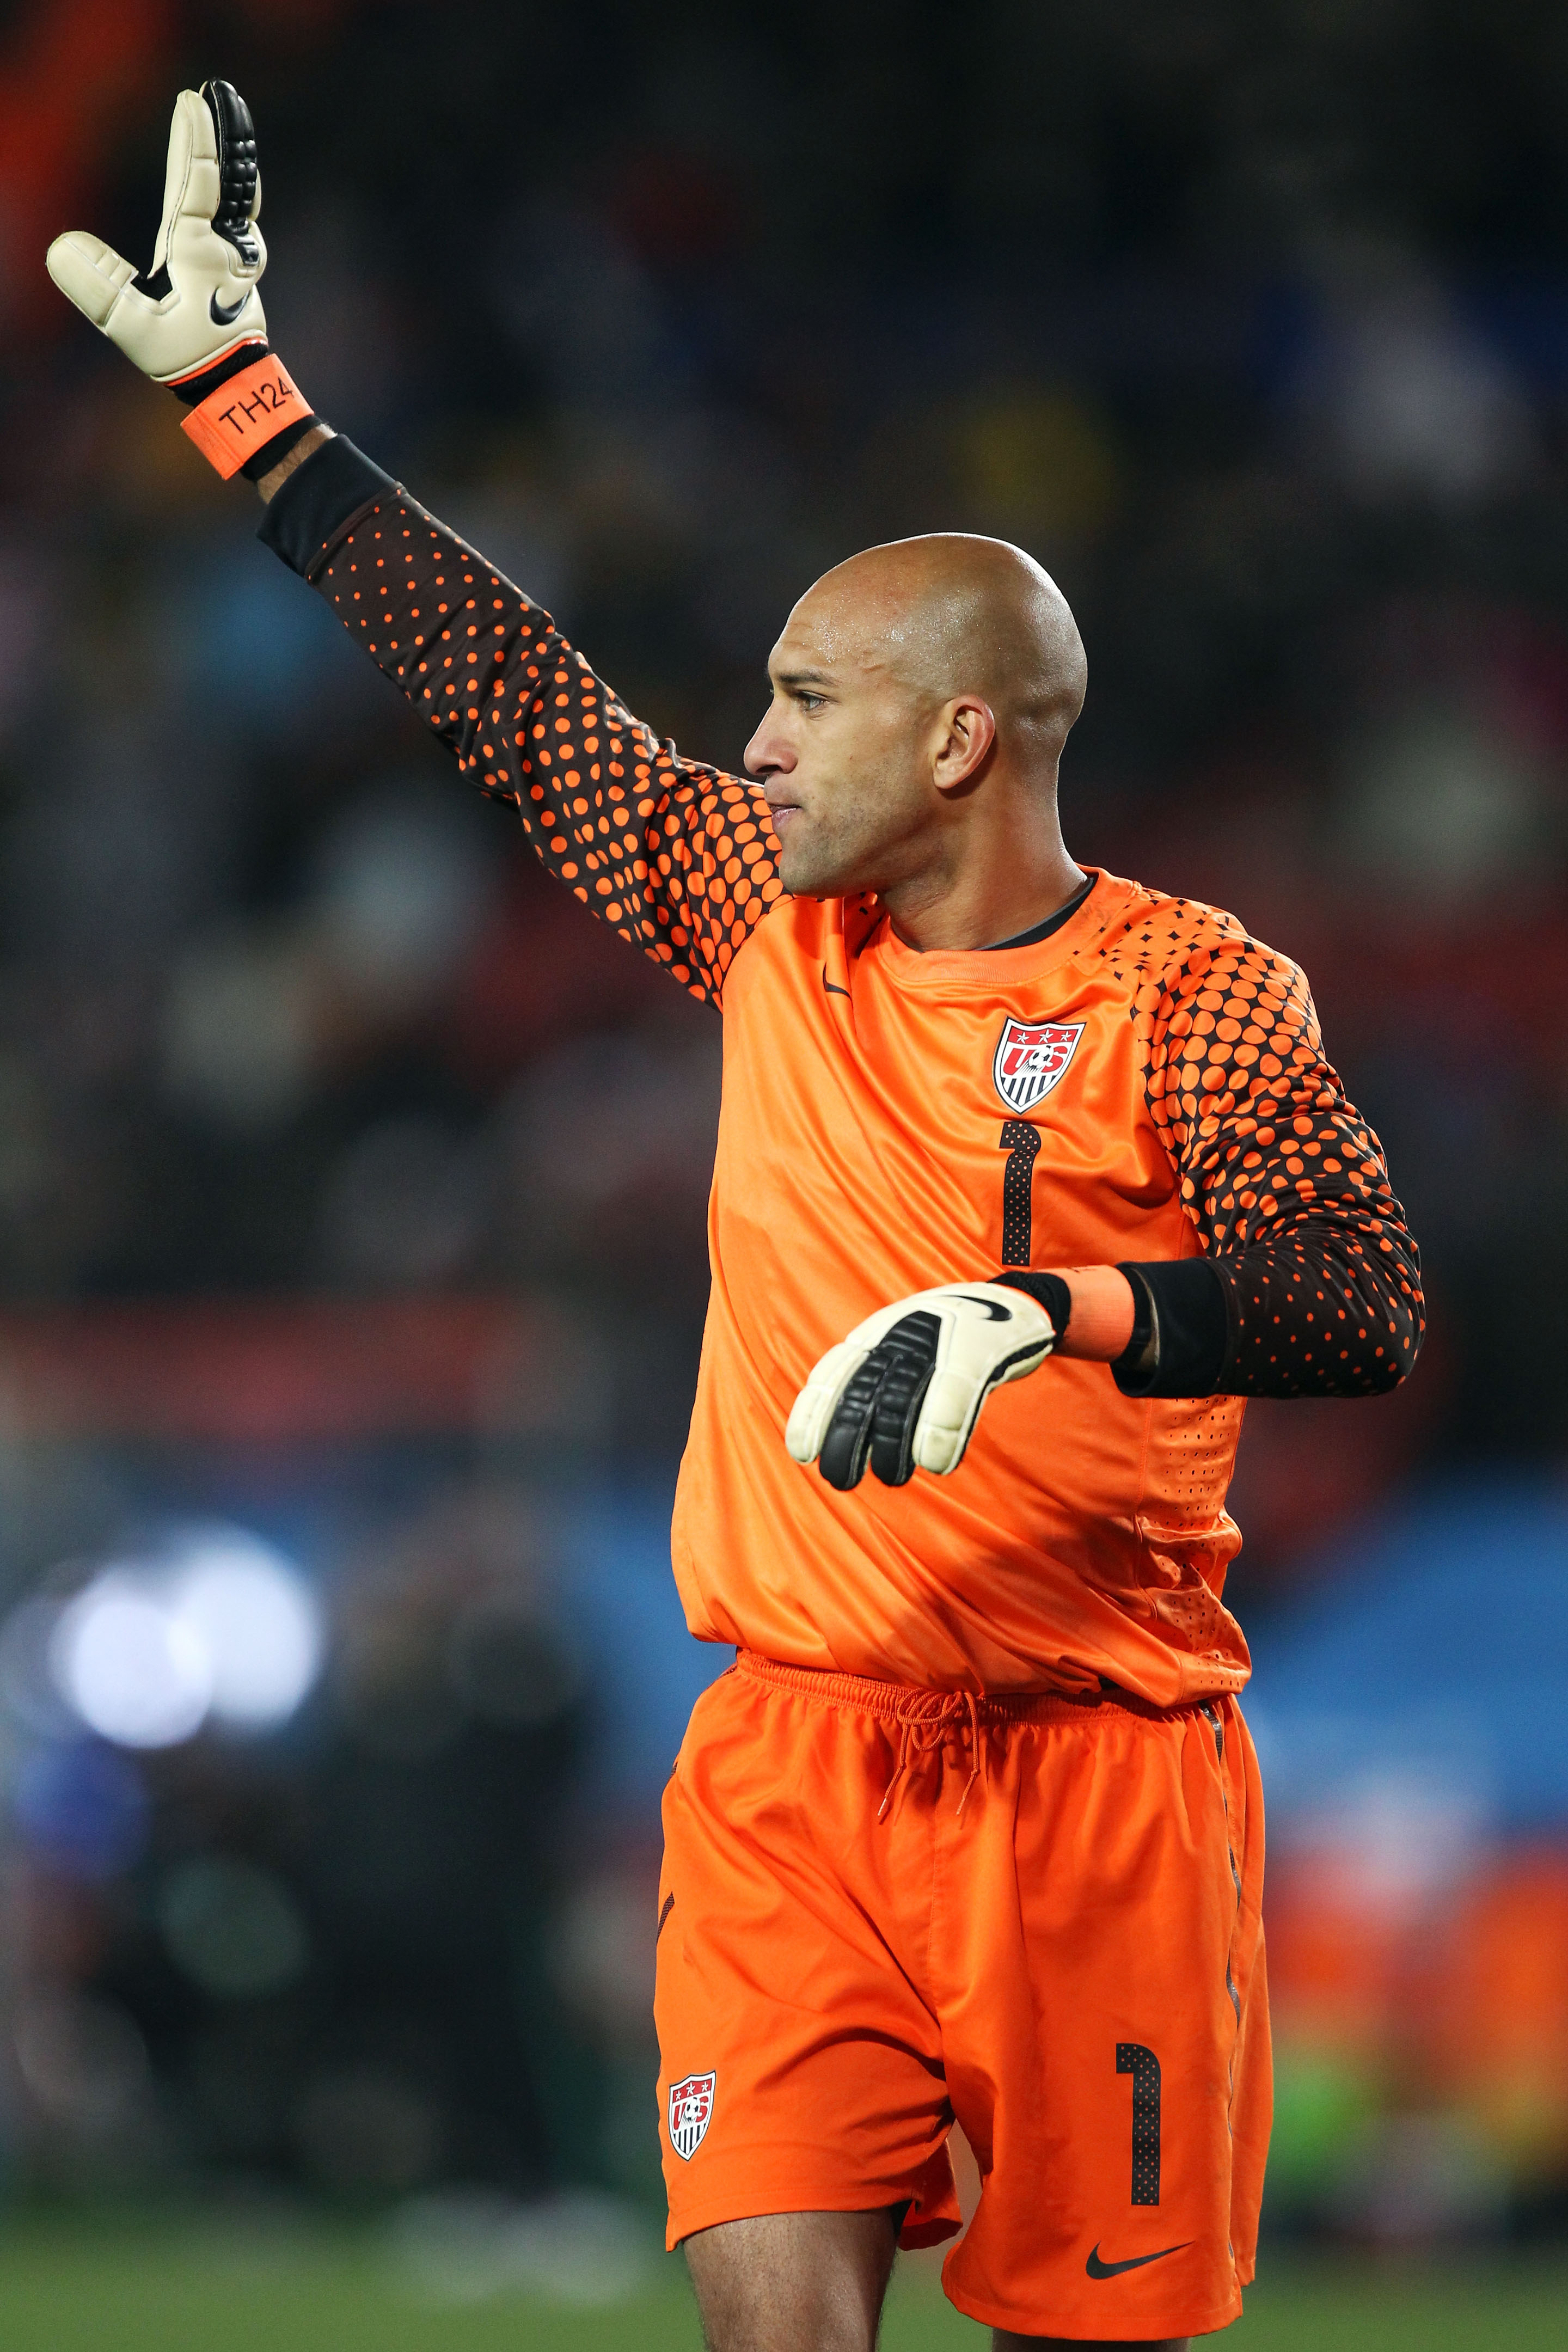 JOHANNESBURG, SOUTH AFRICA - JUNE 18:  Tim Howard of the United States waves to fans after the 2010 FIFA World Cup South Africa Group C match between Slovenia and USA at Ellis Park Stadium on June 18, 2010 in Johannesburg, South Africa.  (Photo by Streete